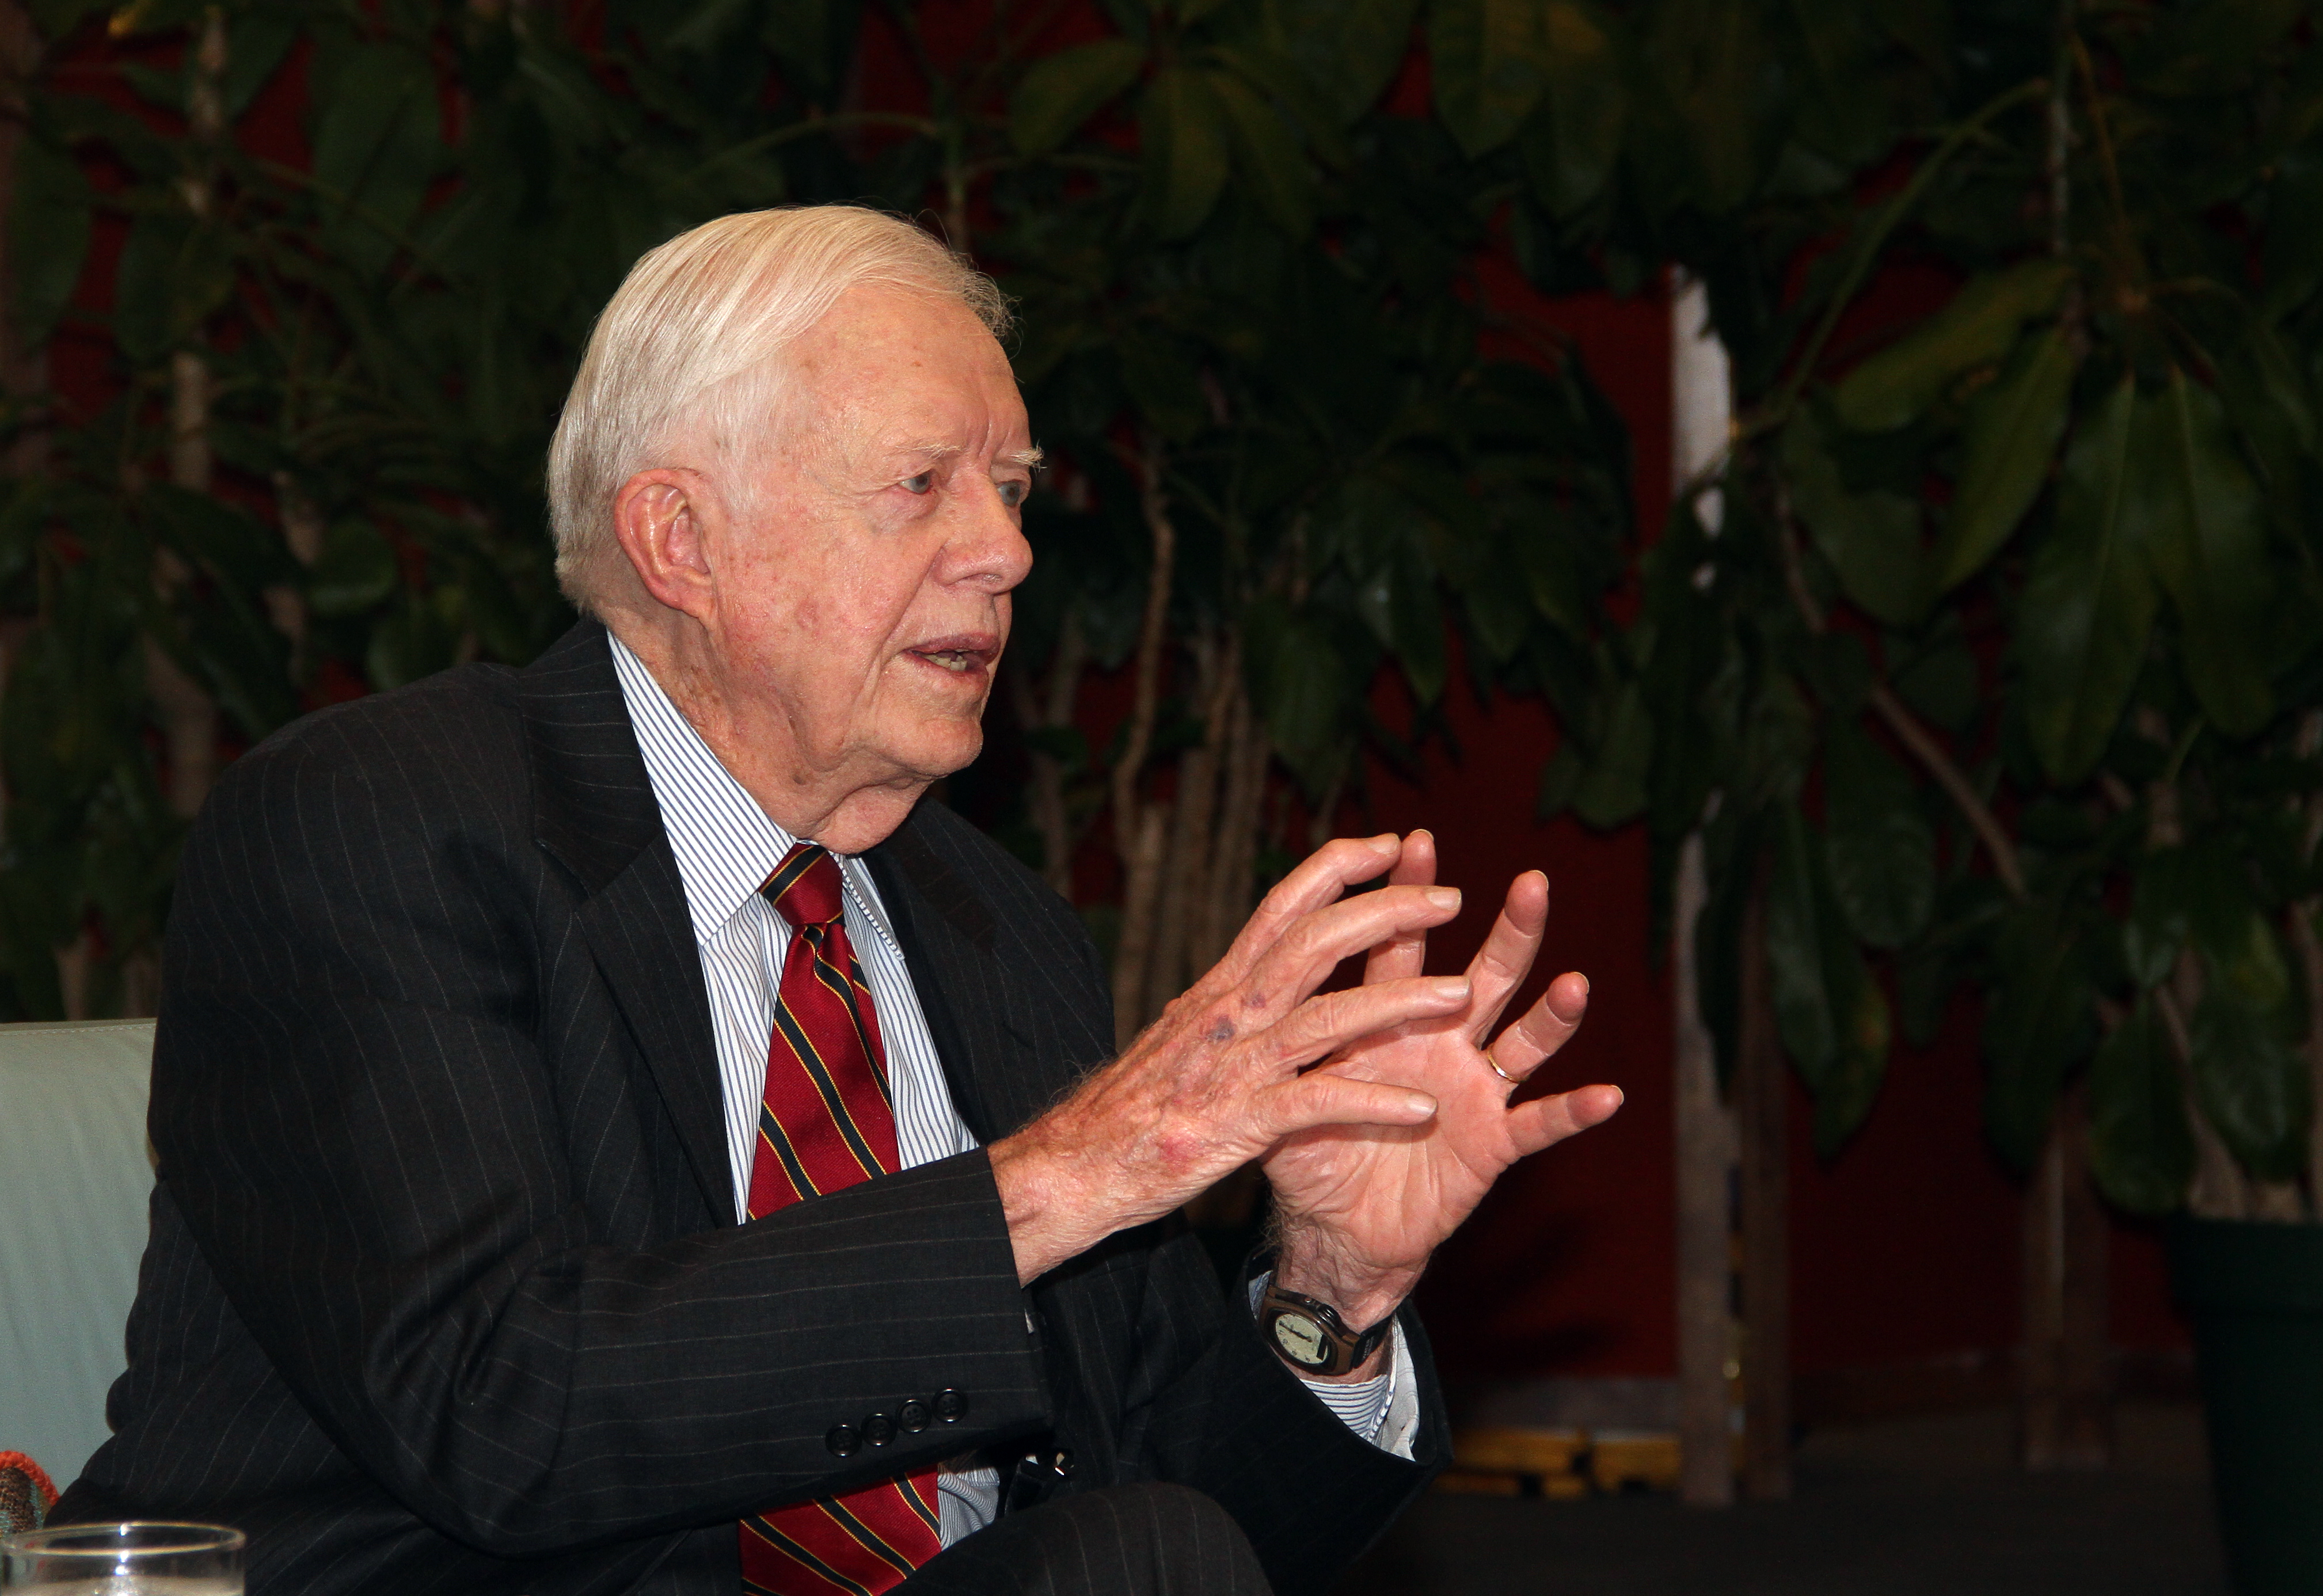 Get the Scoop on President Jimmy Carter